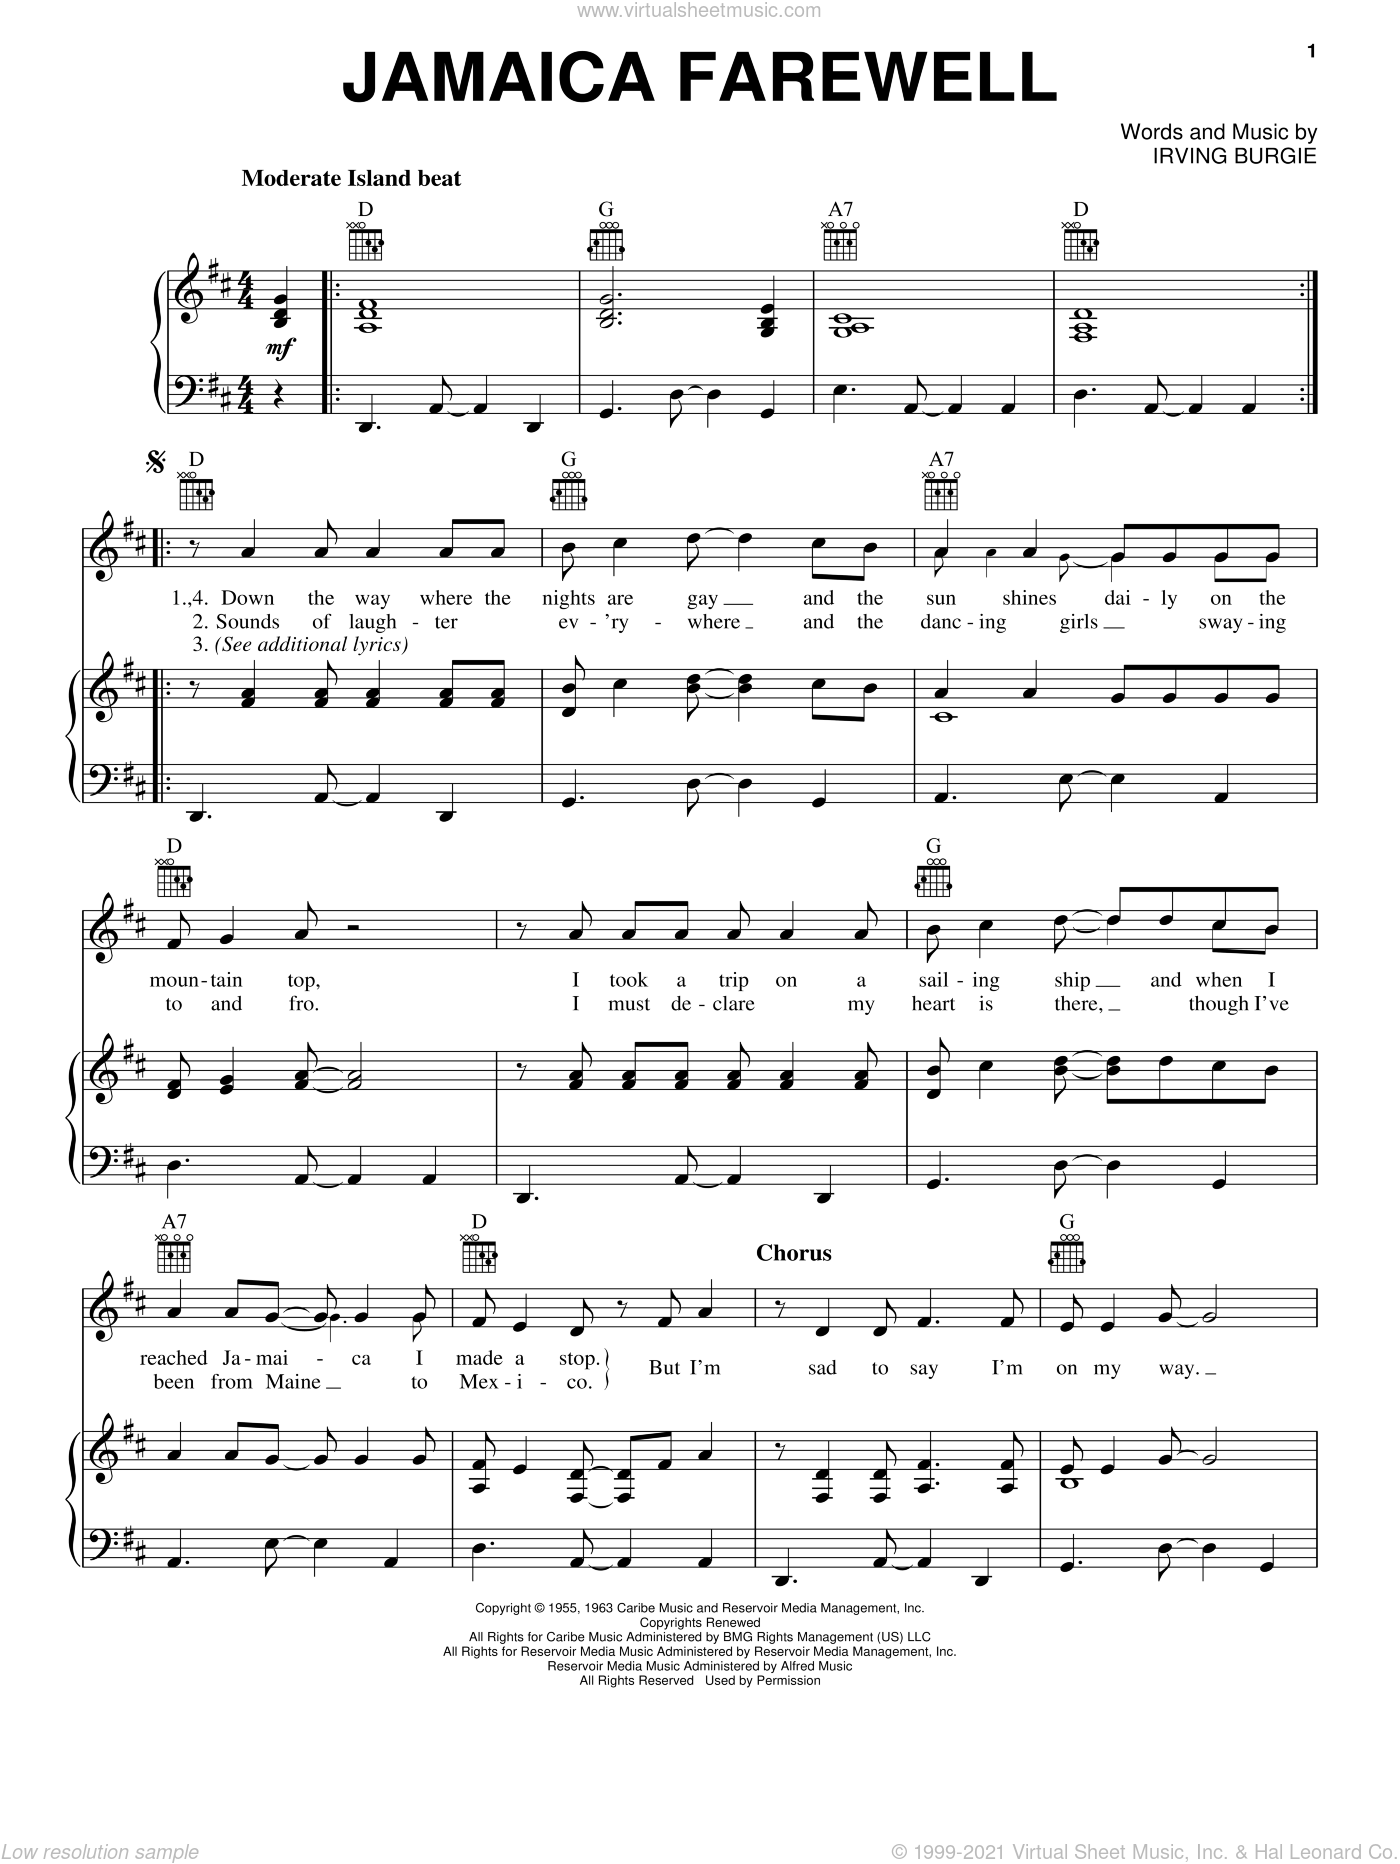 Jamaica Farewell sheet music for voice, piano or guitar by Harry Belafonte and Irving Burgie, intermediate skill level